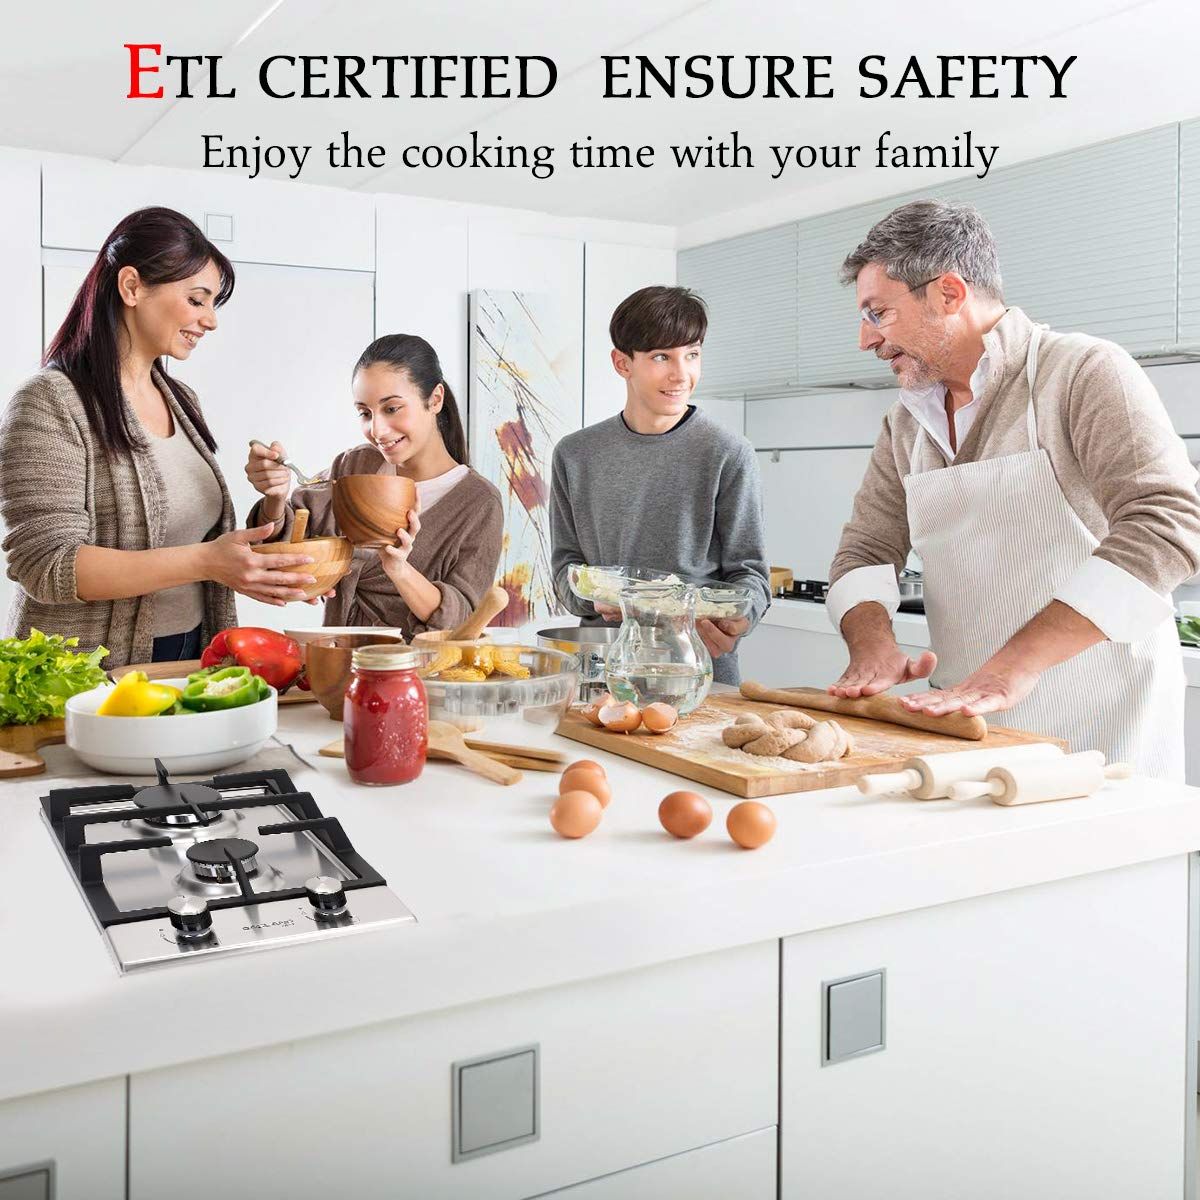 ETL Safety Certified Gasland chef GH30BF 12 Built-in Gas Stove Top Thermocouple Protection /& Easy To Clean Tempered Glass LPG Natural Gas Cooktop Gas Stove Top with 2 Sealed Burners Gas Cooktop